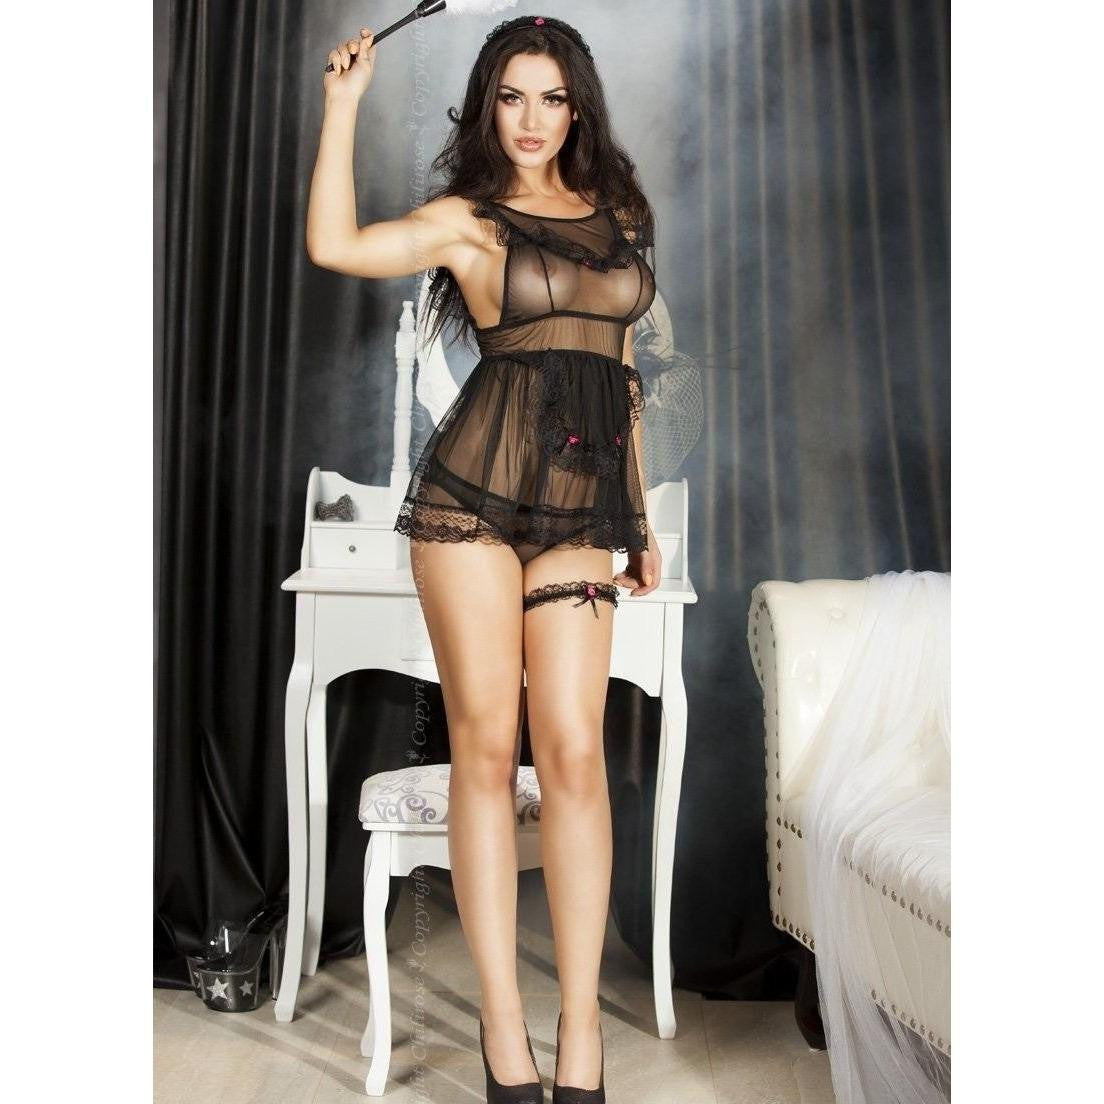 Lingerie French Maid nightdress set for <span class=money>€26.95 EUR</span> at Flirtywomen